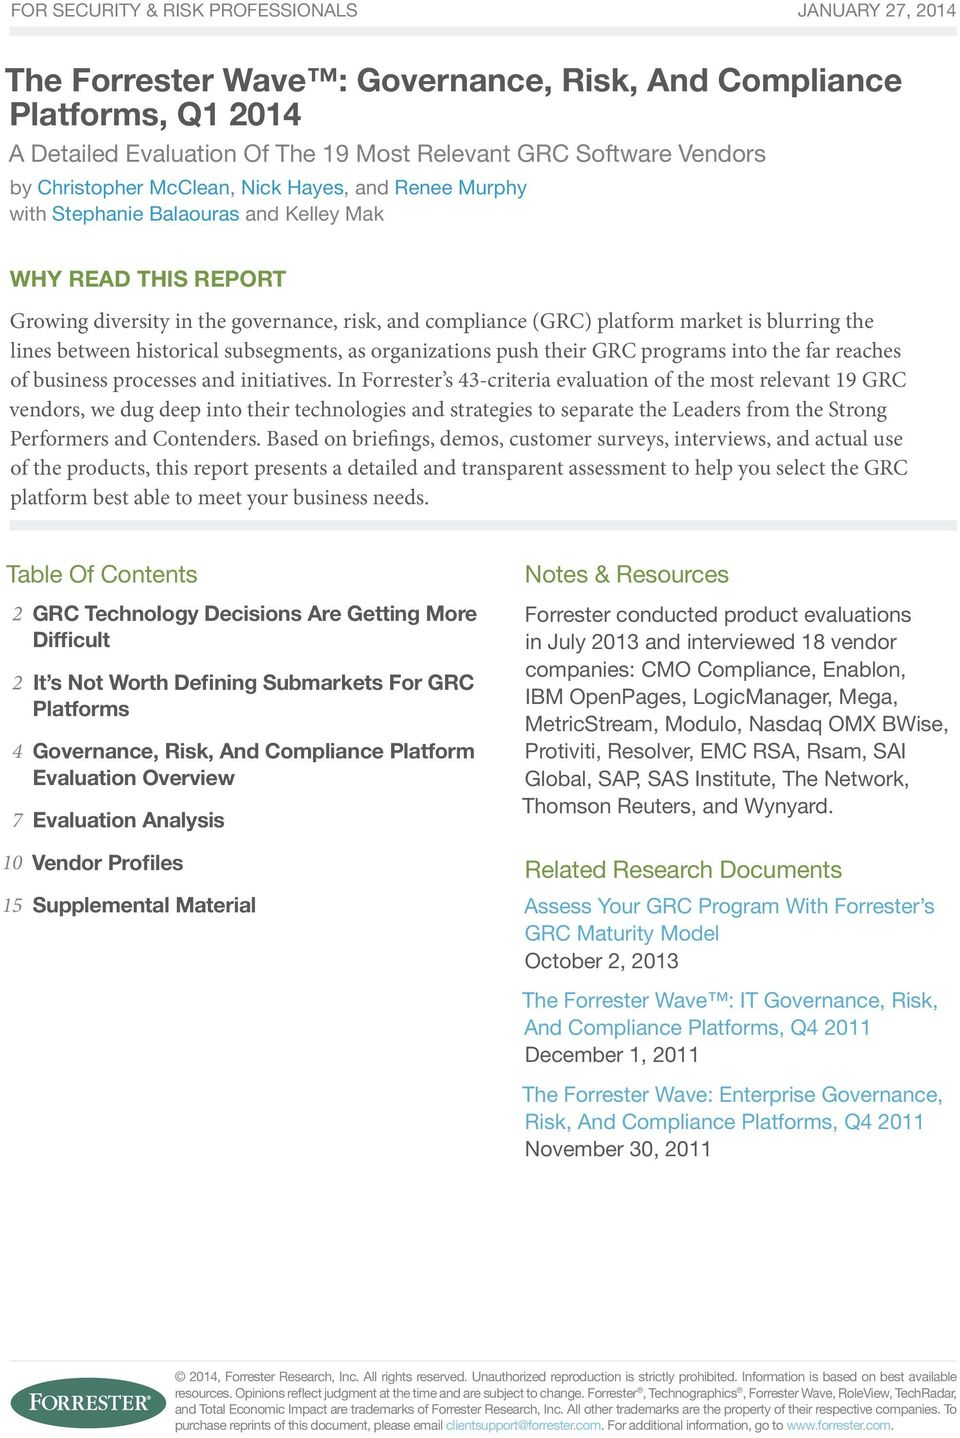 The Forrester Wave : Governance, Risk, And Compliance